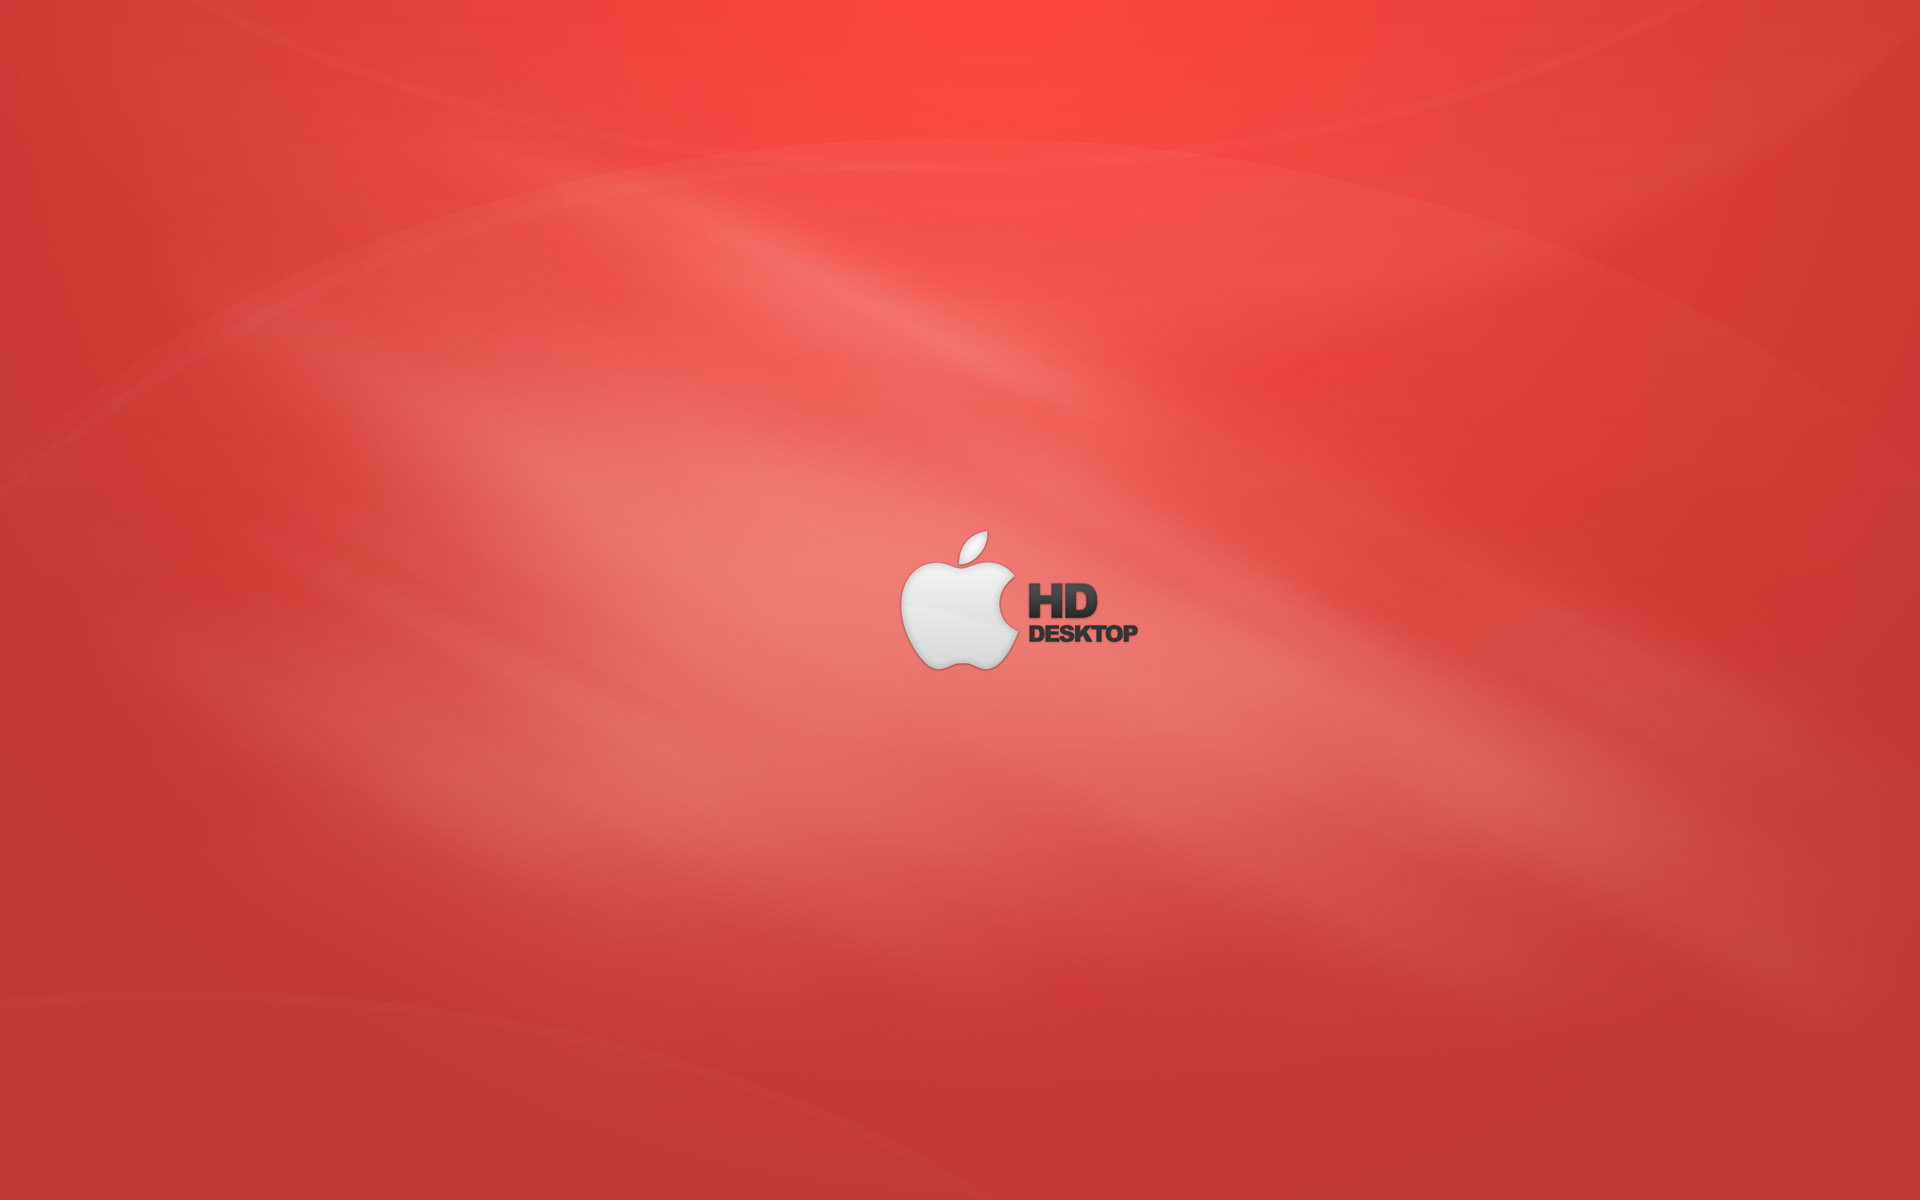 wallpaper apple hd red apple, different